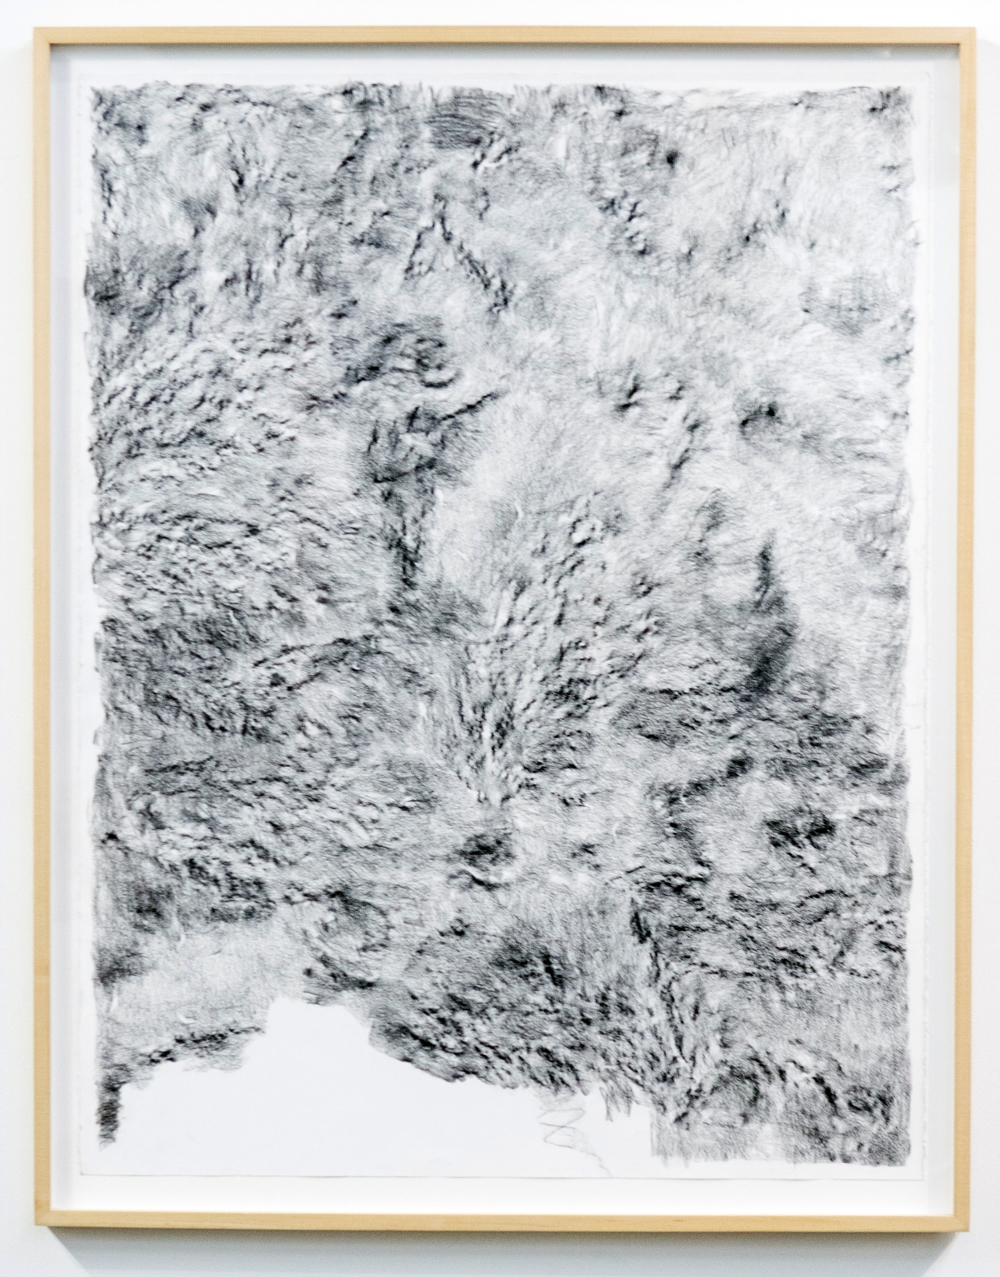 MLSL_02_ElysianPark Conté on rag paper Paper 49.75 x 38.5 in (126.37 x 97.79 cm) Framed 52.25 x 42.5 in (132.72 x 107.95 cm) 2015